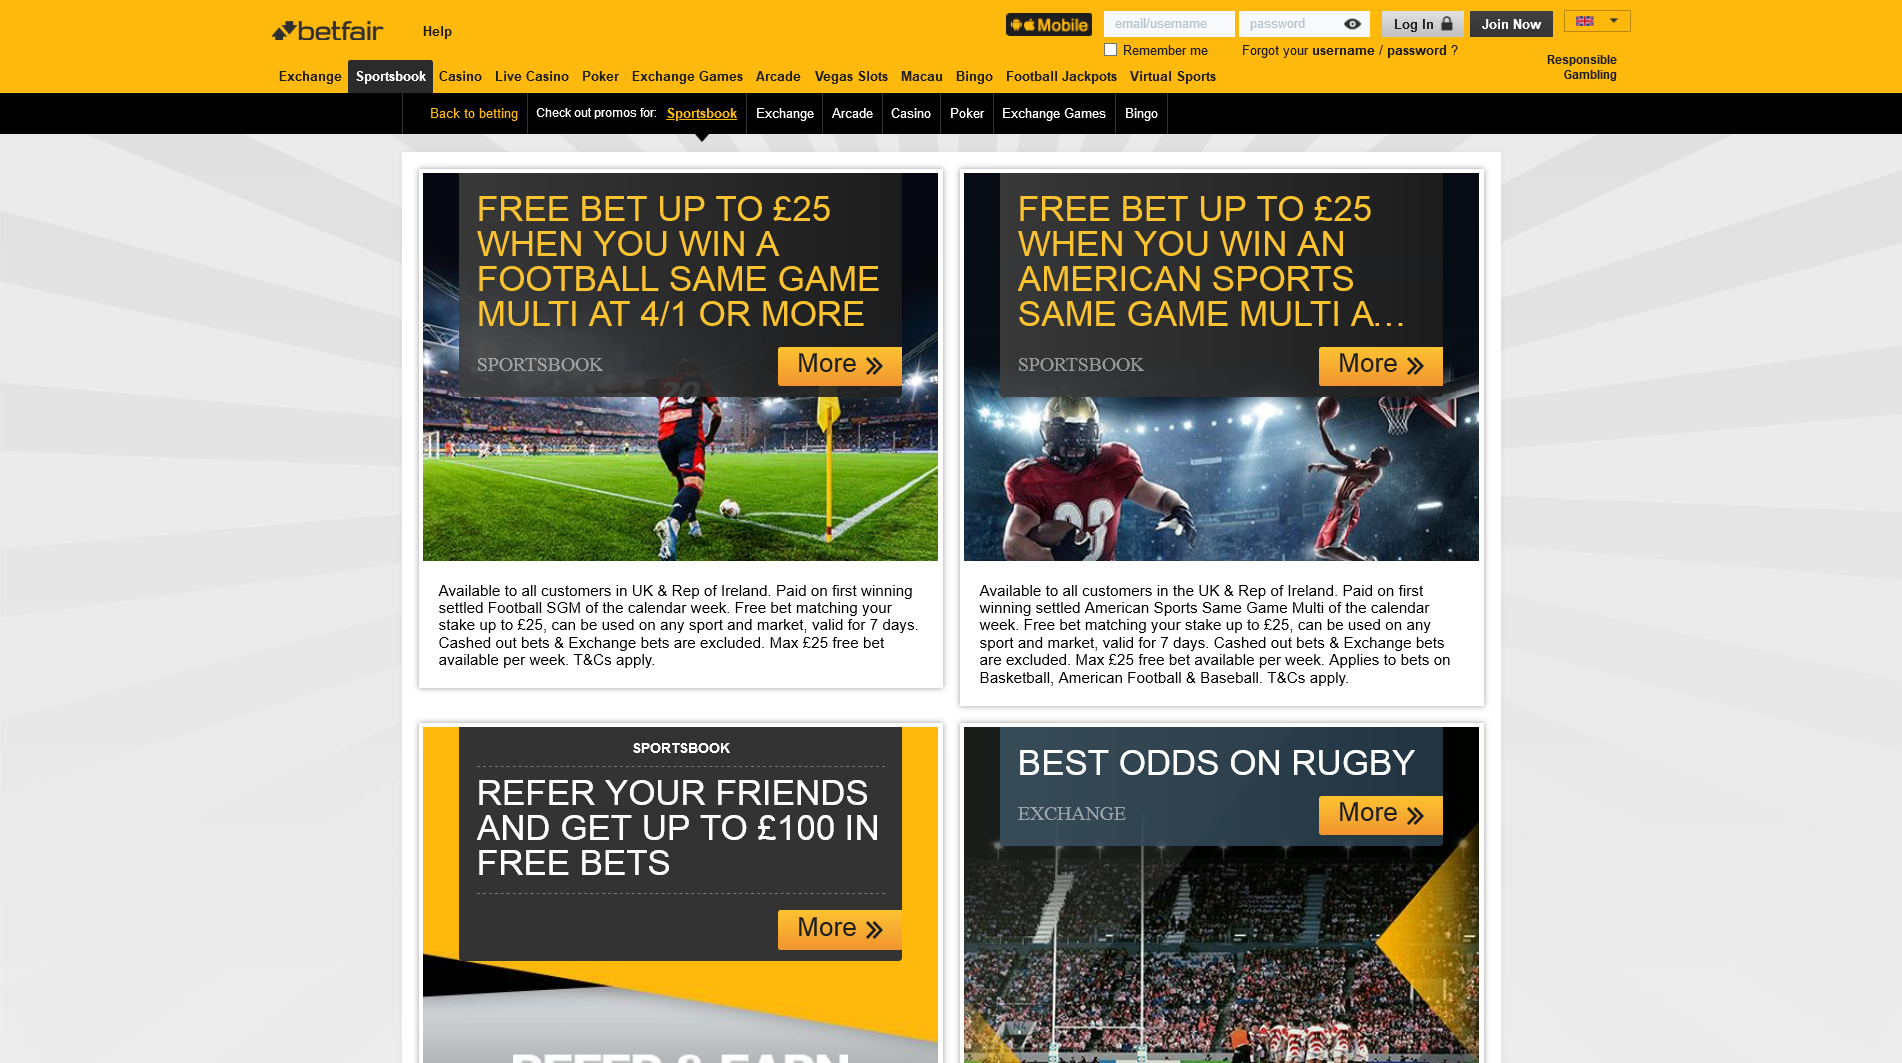 betfair bonuses and promotions